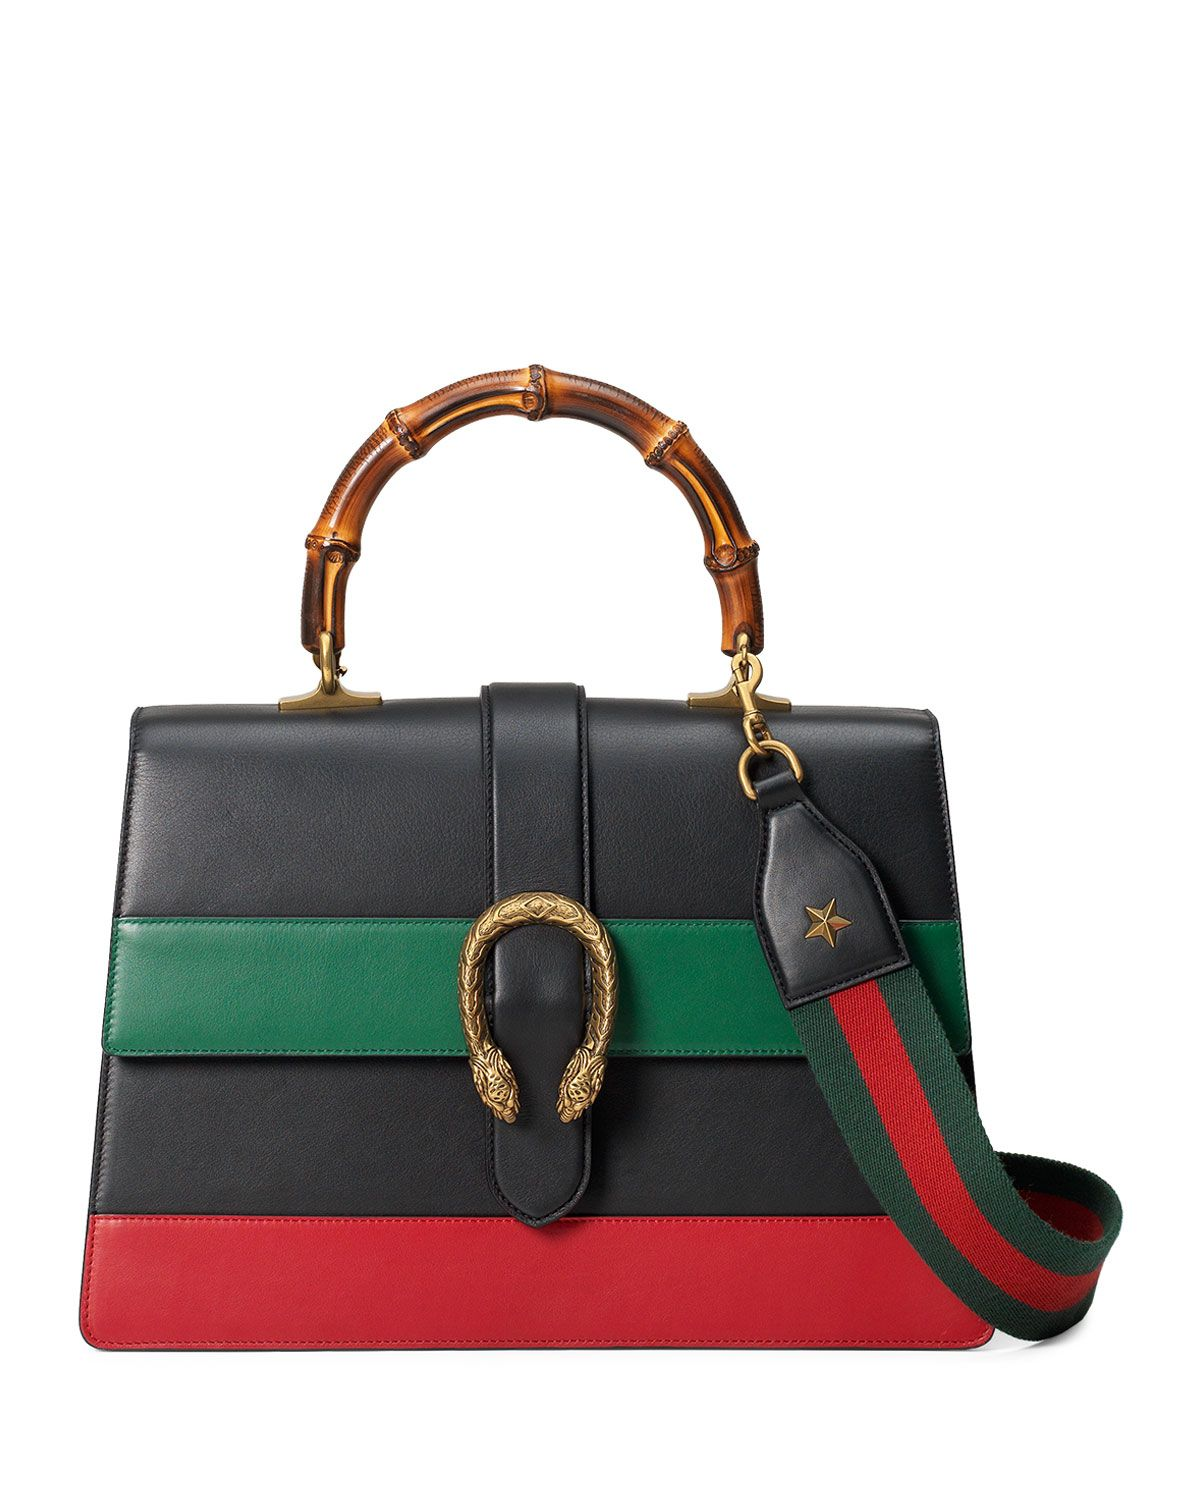 025b23ae394 Gucci Dionysus Striped Bamboo Top-Handle Bag